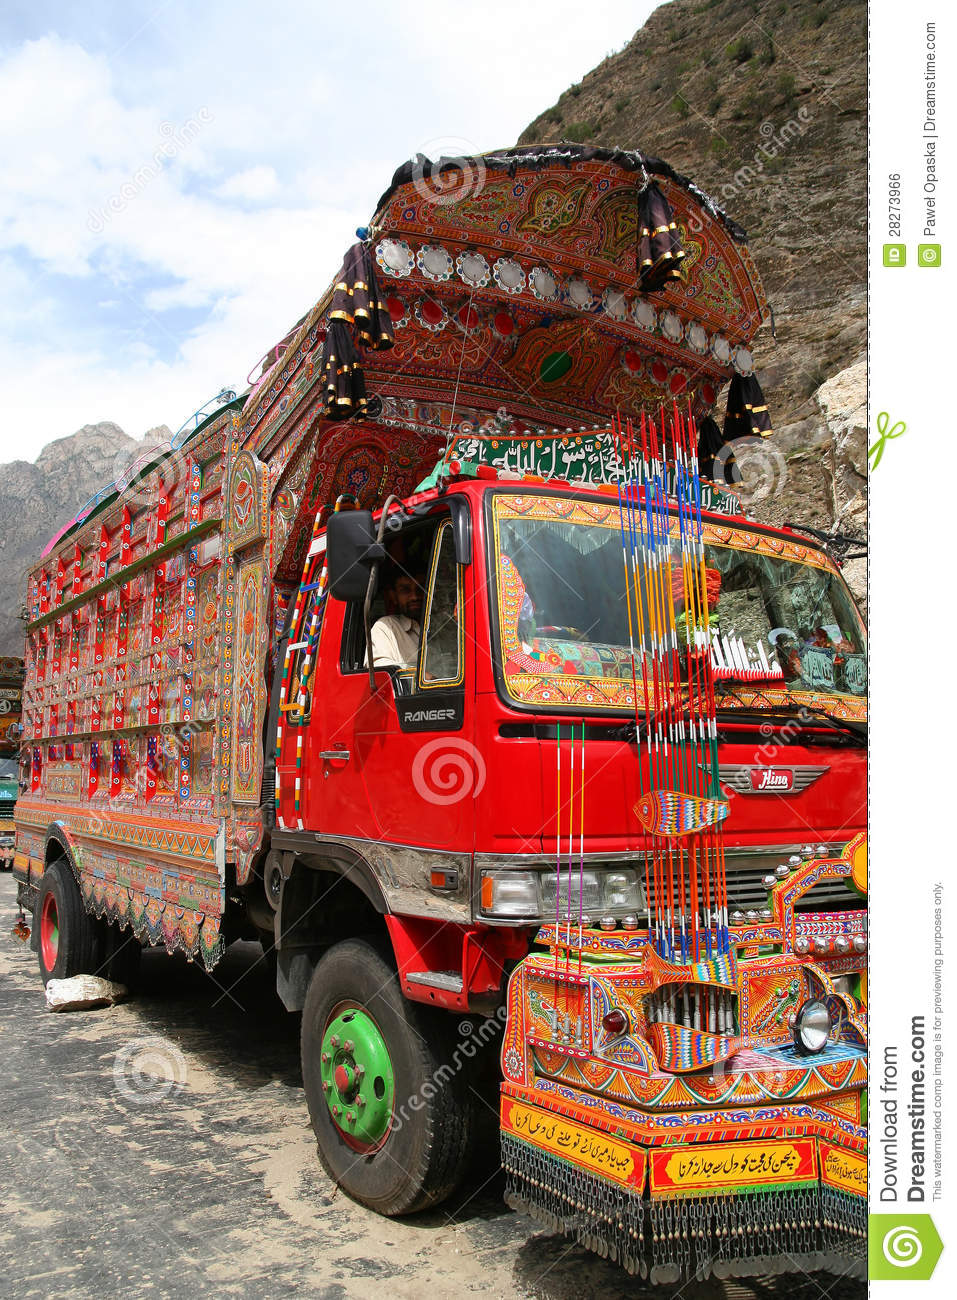 Truck pricess mazda truck prices in pakistan mazda truck prices in pakistan massey ferguson tractor mf 7620 wiring diagram pdf download fandeluxe Images